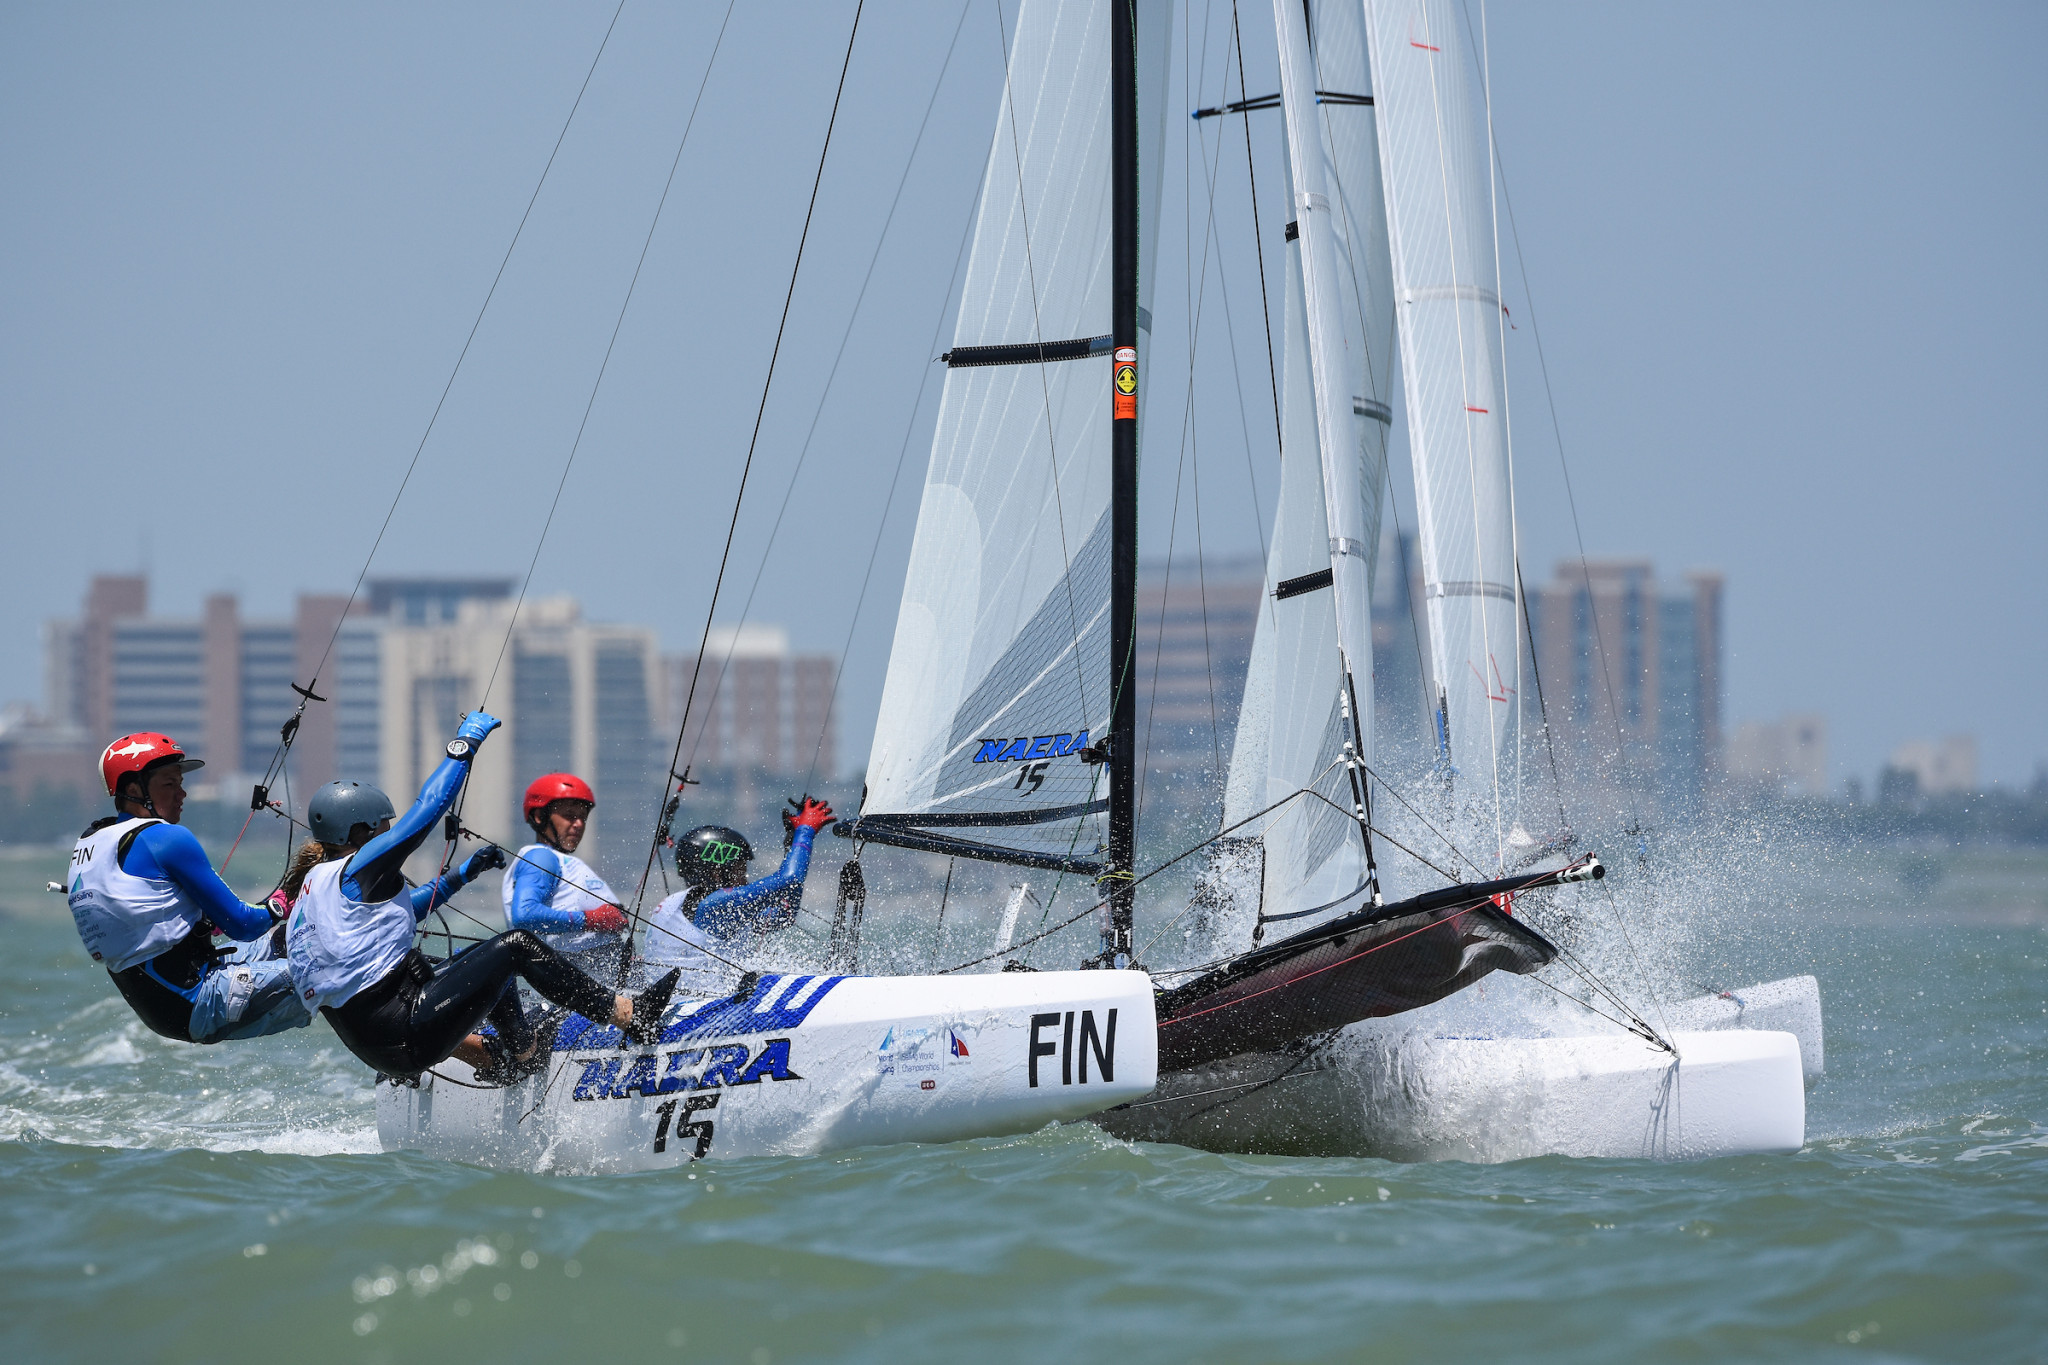 The Hague in the Netherlands is set to host the 2021 Youth Sailing World Championships ©World Sailing